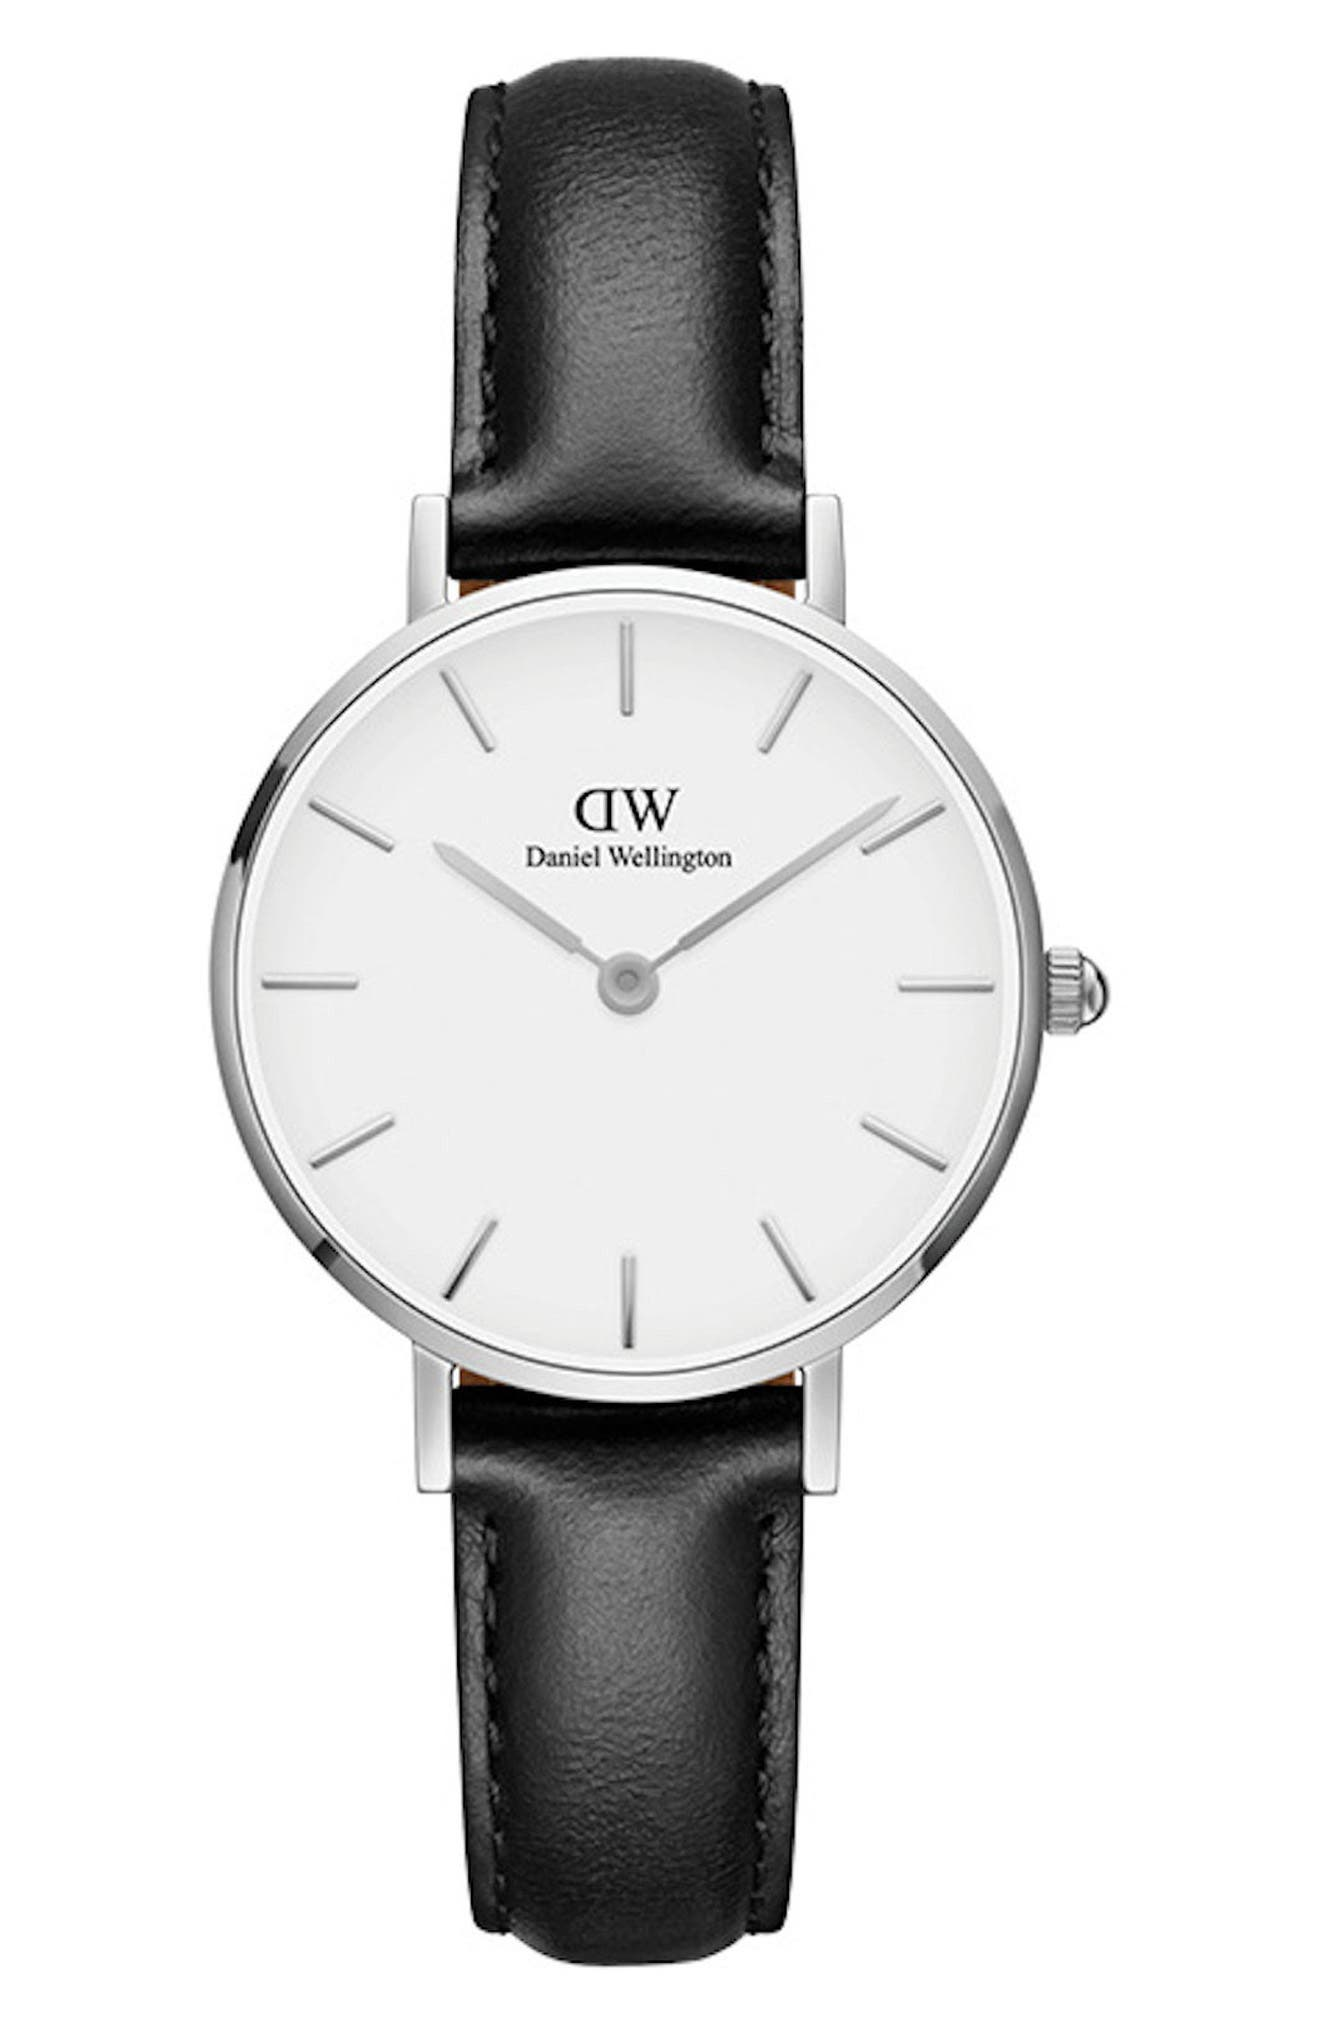 DANIEL WELLINGTON Classic Petite Leather Strap Watch, 28Mm in Black/ White/ Silver